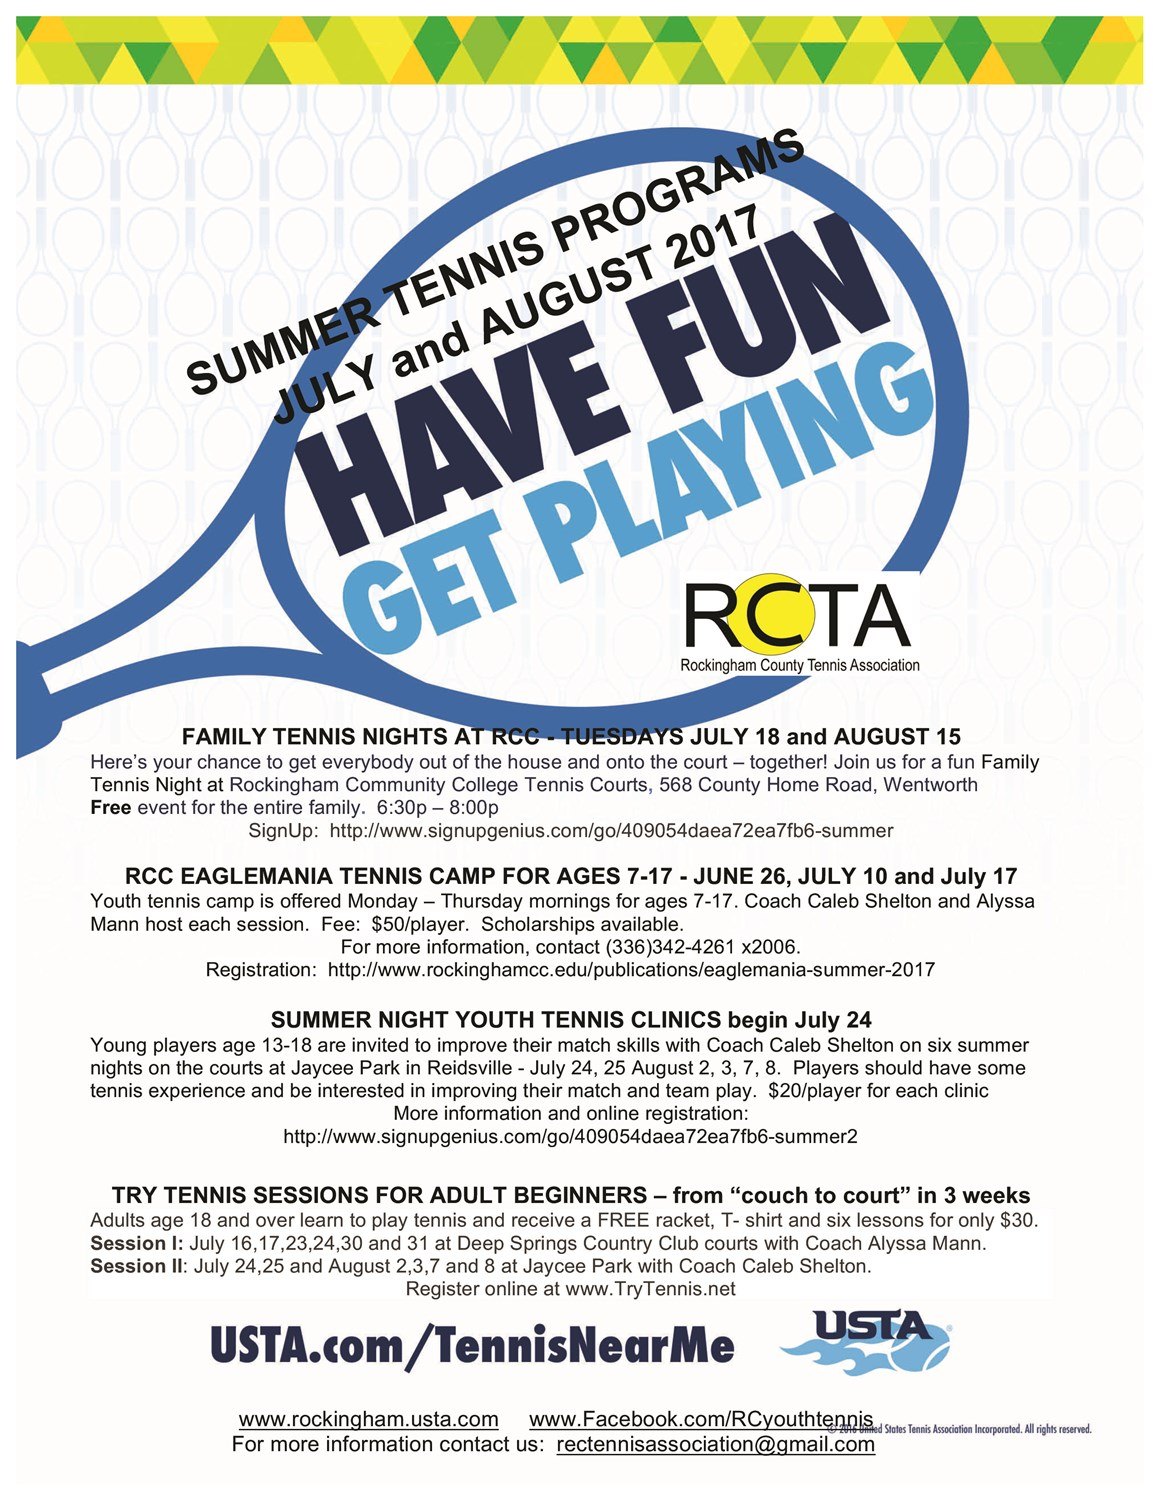 RC_Tennis_SUMMER_2017_Program_flyer_July_August-page-0